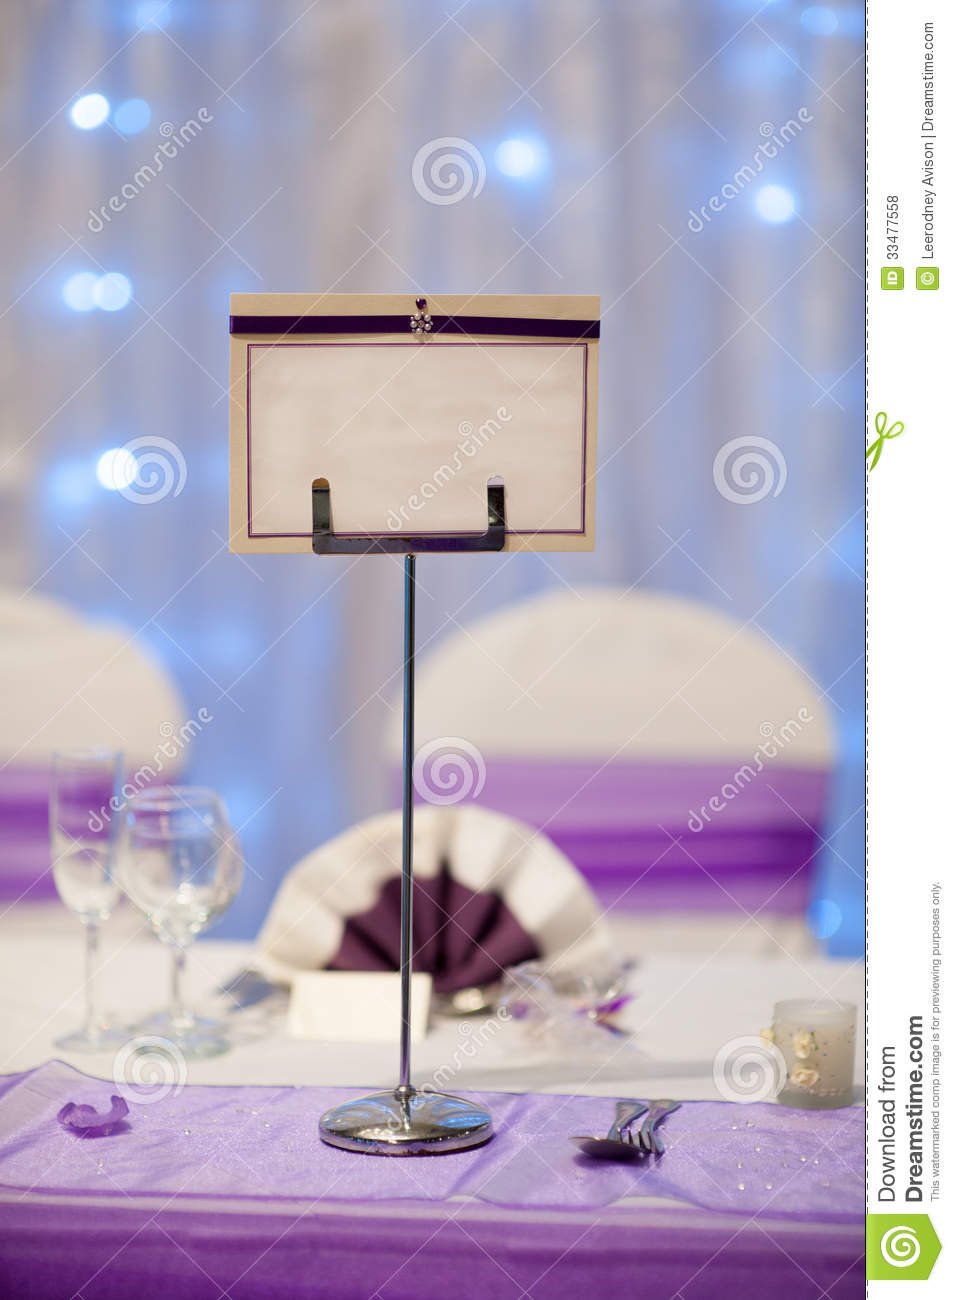 Table Vide De Mariage De Support De Nom Photos Libres De Droits Image 33477558